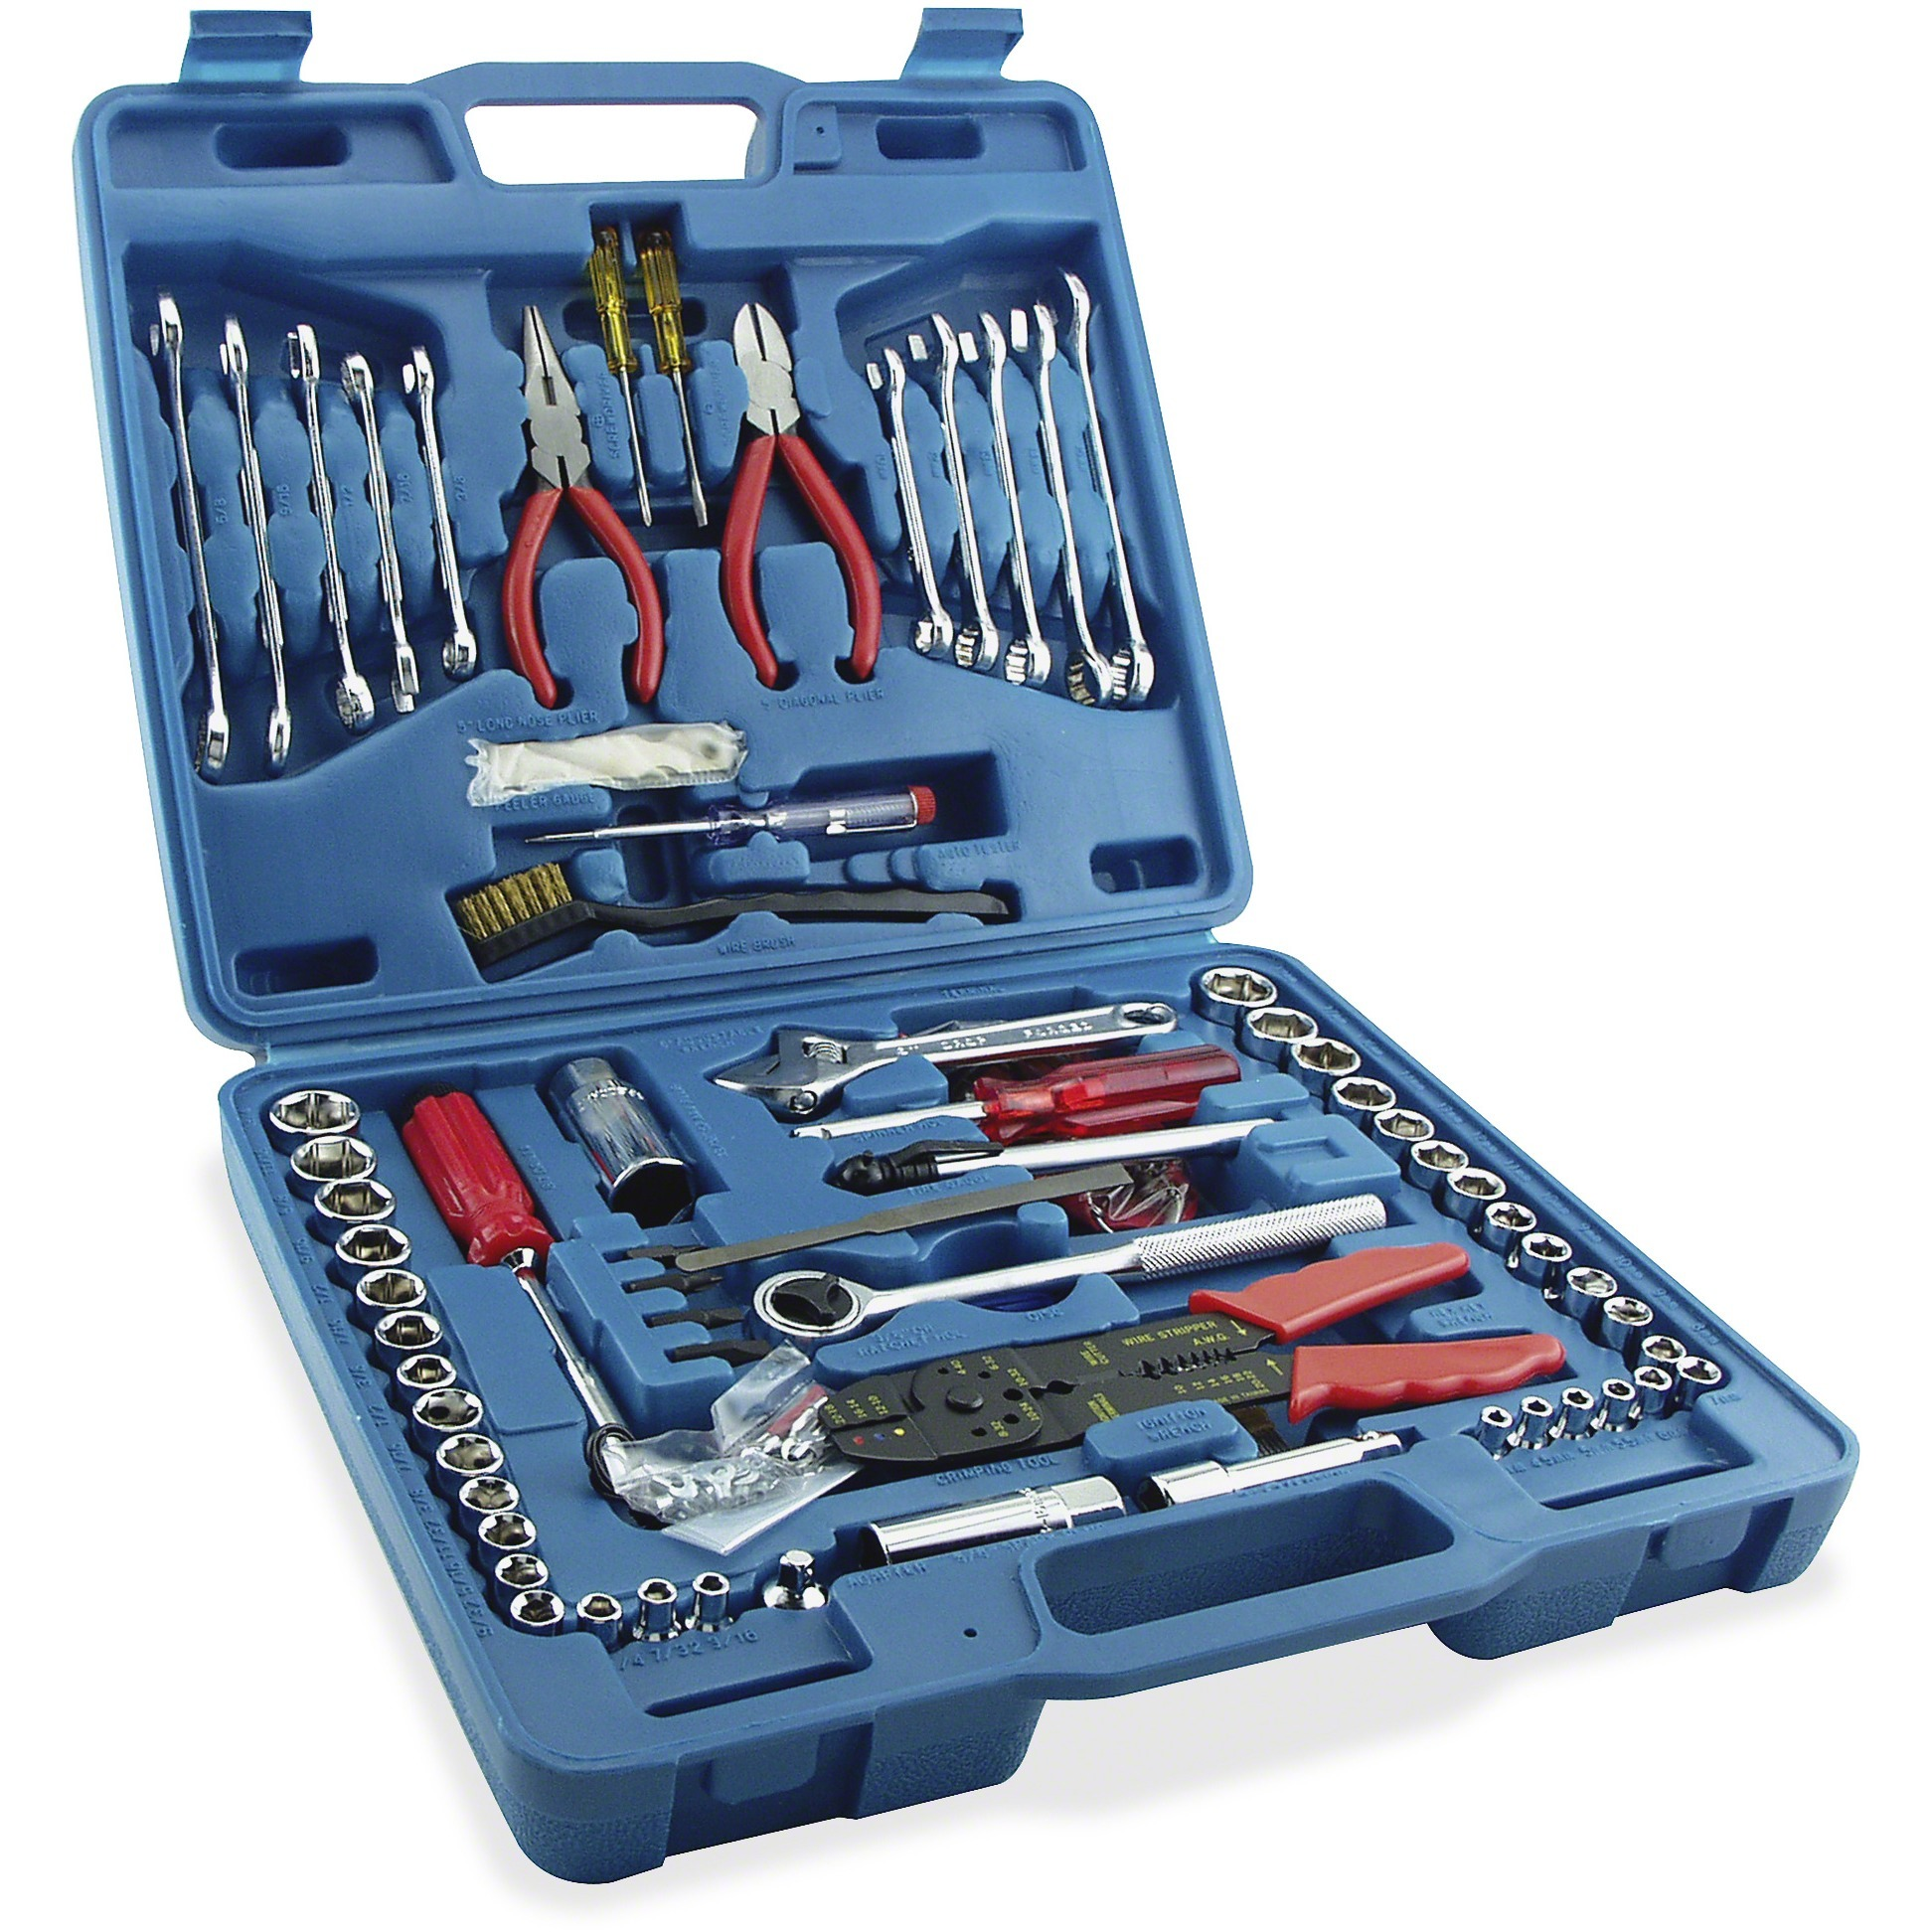 Great Neck, GNSTK119, Hardware Machinery 119-piece Tool Set, 1, Black